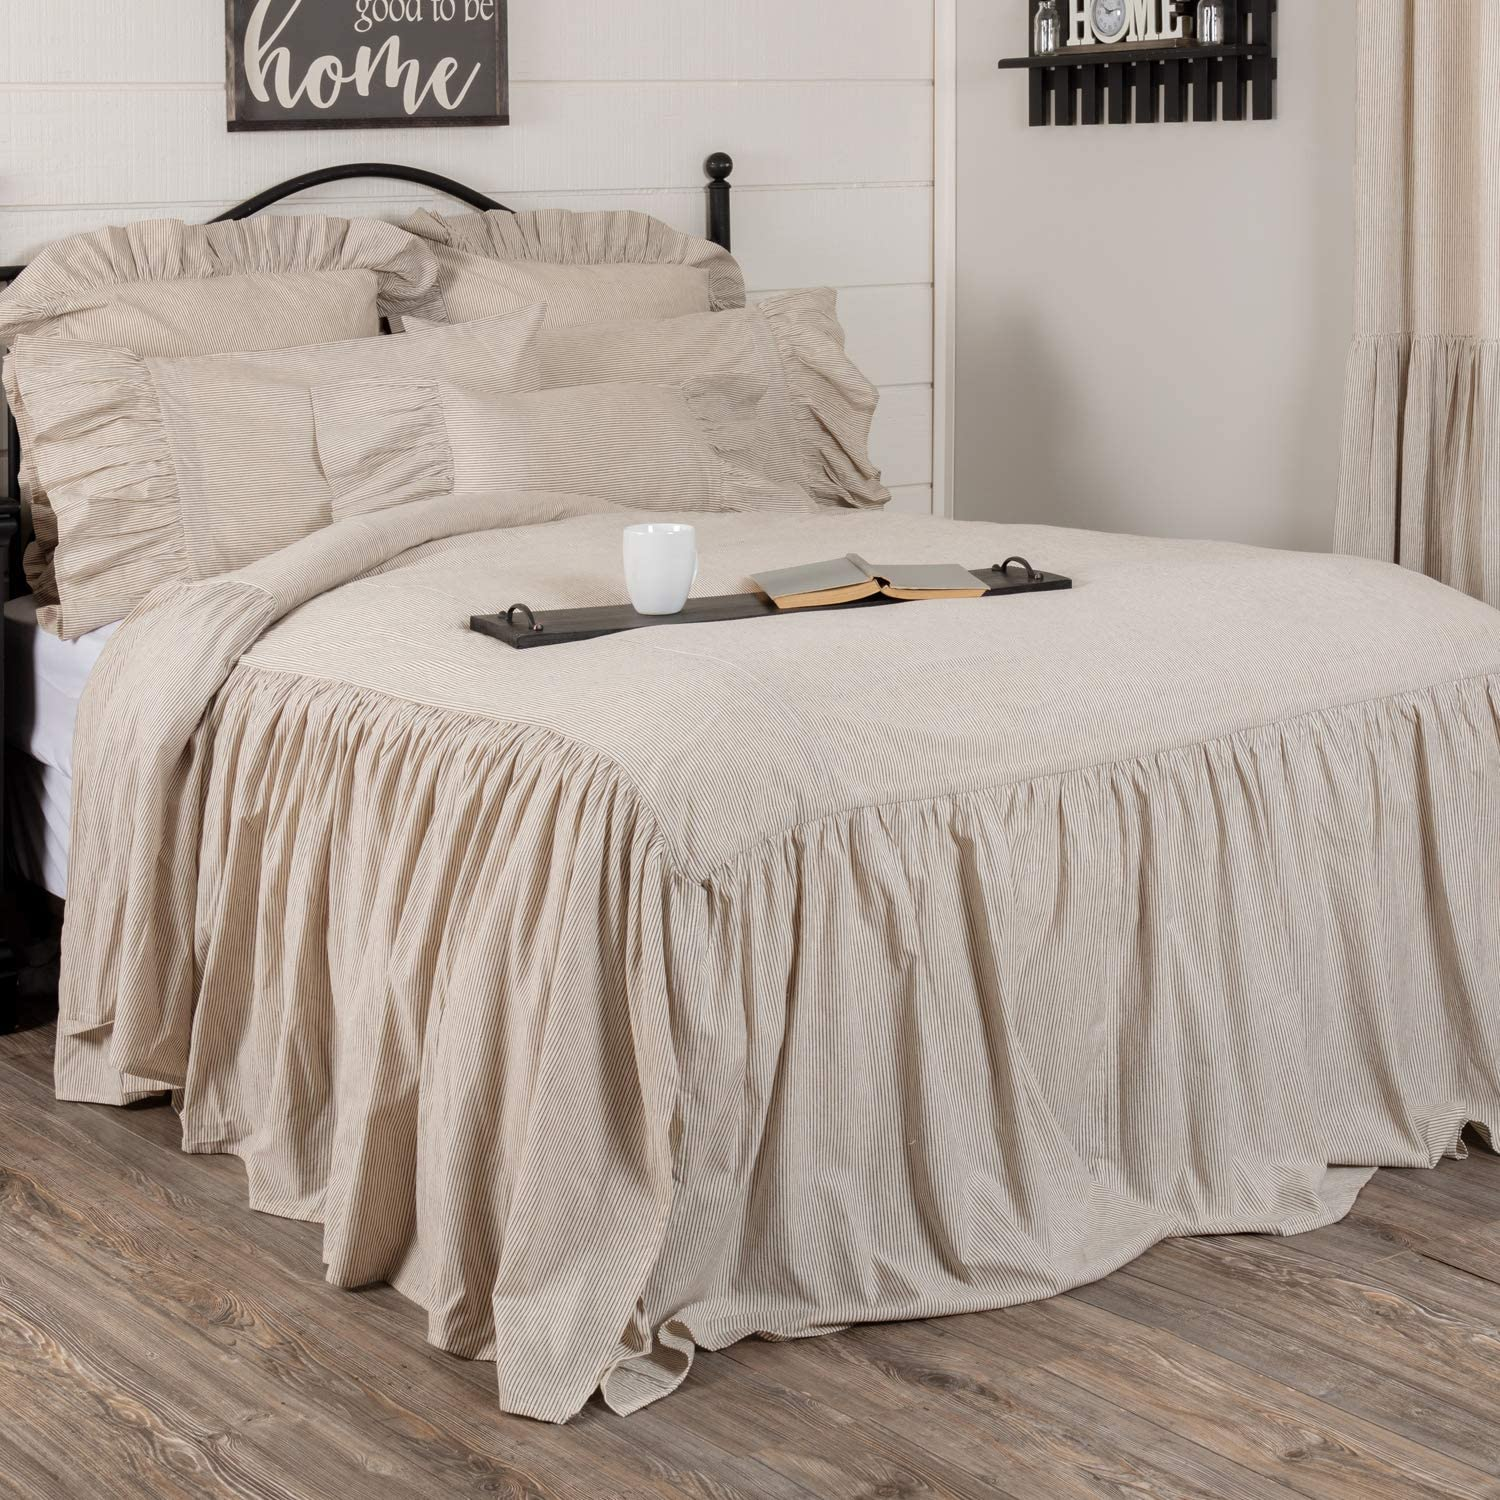 Sara S Ticking Skirted Queen Bedspread W 27 Ruffled Skirt Cream Black Mini Stripe Vintage Farmhouse Country Cottage Bedding Kitchen Dining